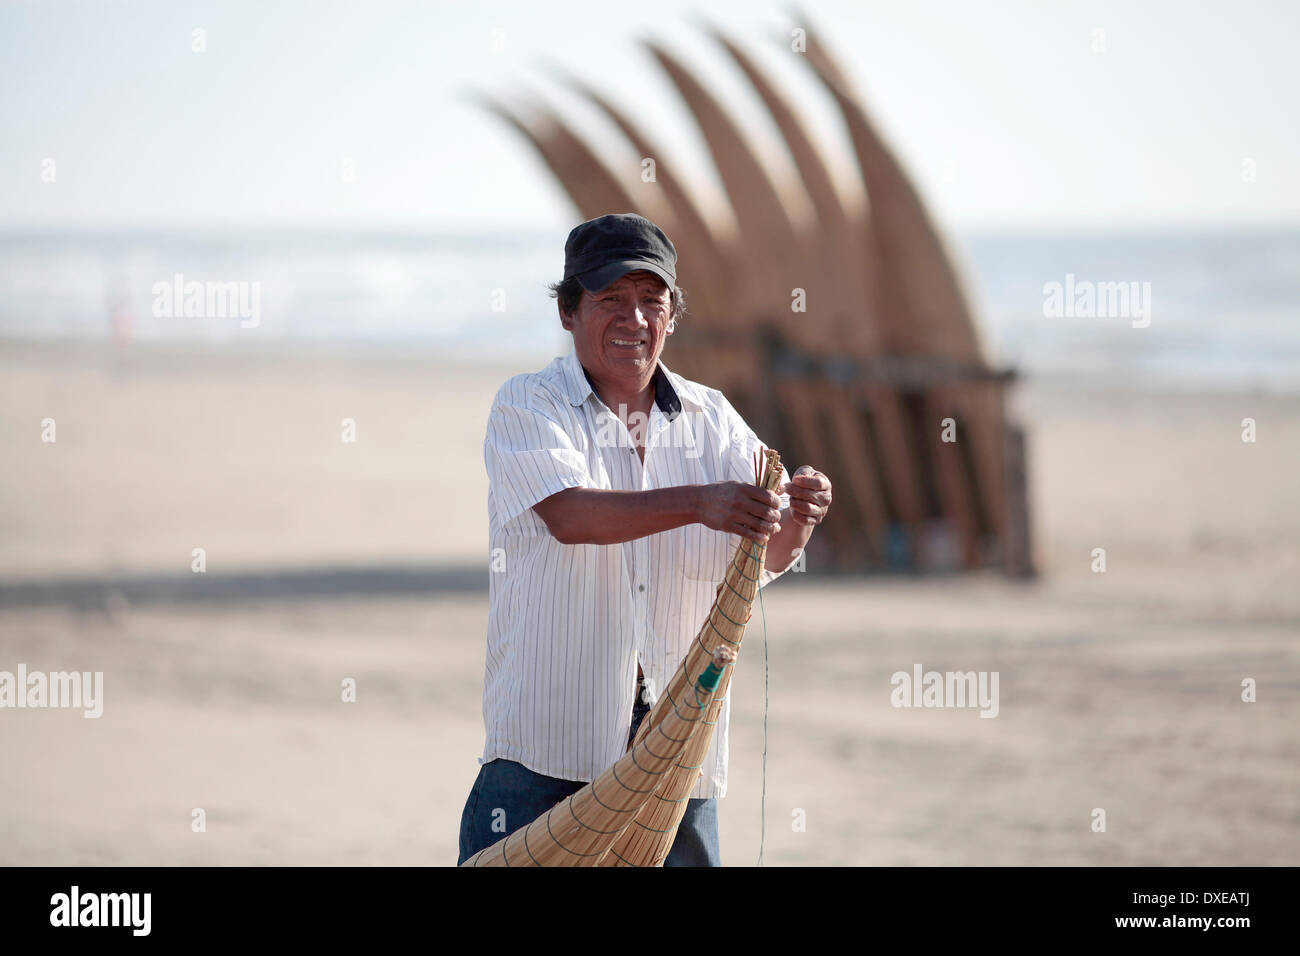 PIMENTEL, PERU - MARCH 22: Jorge a fisherman in 'Totora Horses' is seen on the beach of Pimentel repair damage suffered in 'Totora Horses' after a day of fishing in Pacific Ocean, about 800 kilometers north of Lima in Pimentel, Peru, Saturday, March 22, 2014. The 'Totora Horses' are Built with cattail rushes like the ethnic group of the Inca empire Mochica already made five centuries ago. The canoes are used daily to go deep into the ocean, to return after working for Between 8 and 12 hours with 50 kg of fish trapped with nets. Today fishing tends to decrease and thus the income of fisherfolk. - Stock Image